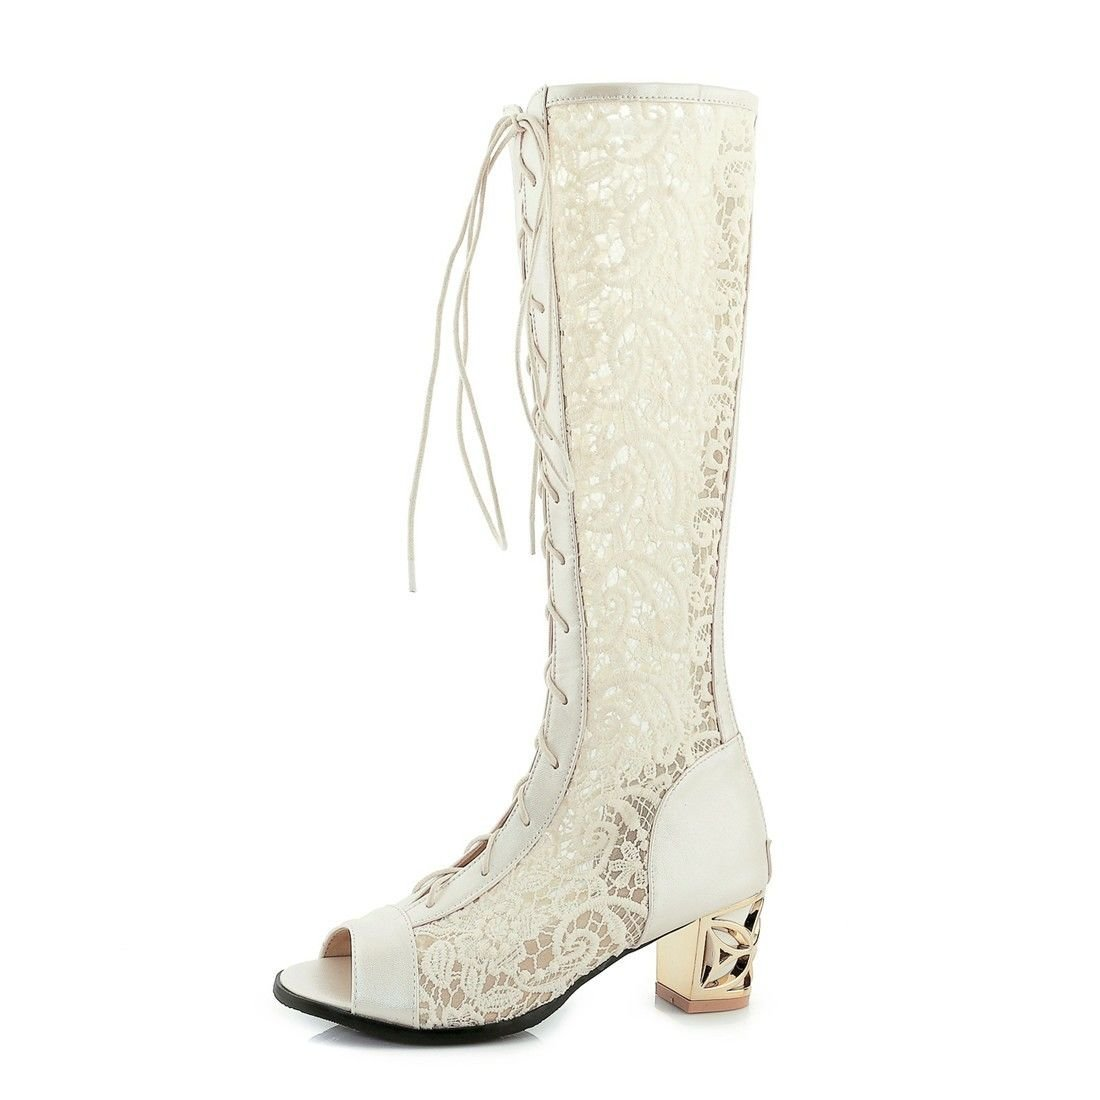 YU&XIN-Spring and Autumn Women's Shoes Europe, the United States Fish mouth cold boots, lace-like with bold, large numbers of high-boots,beige,35